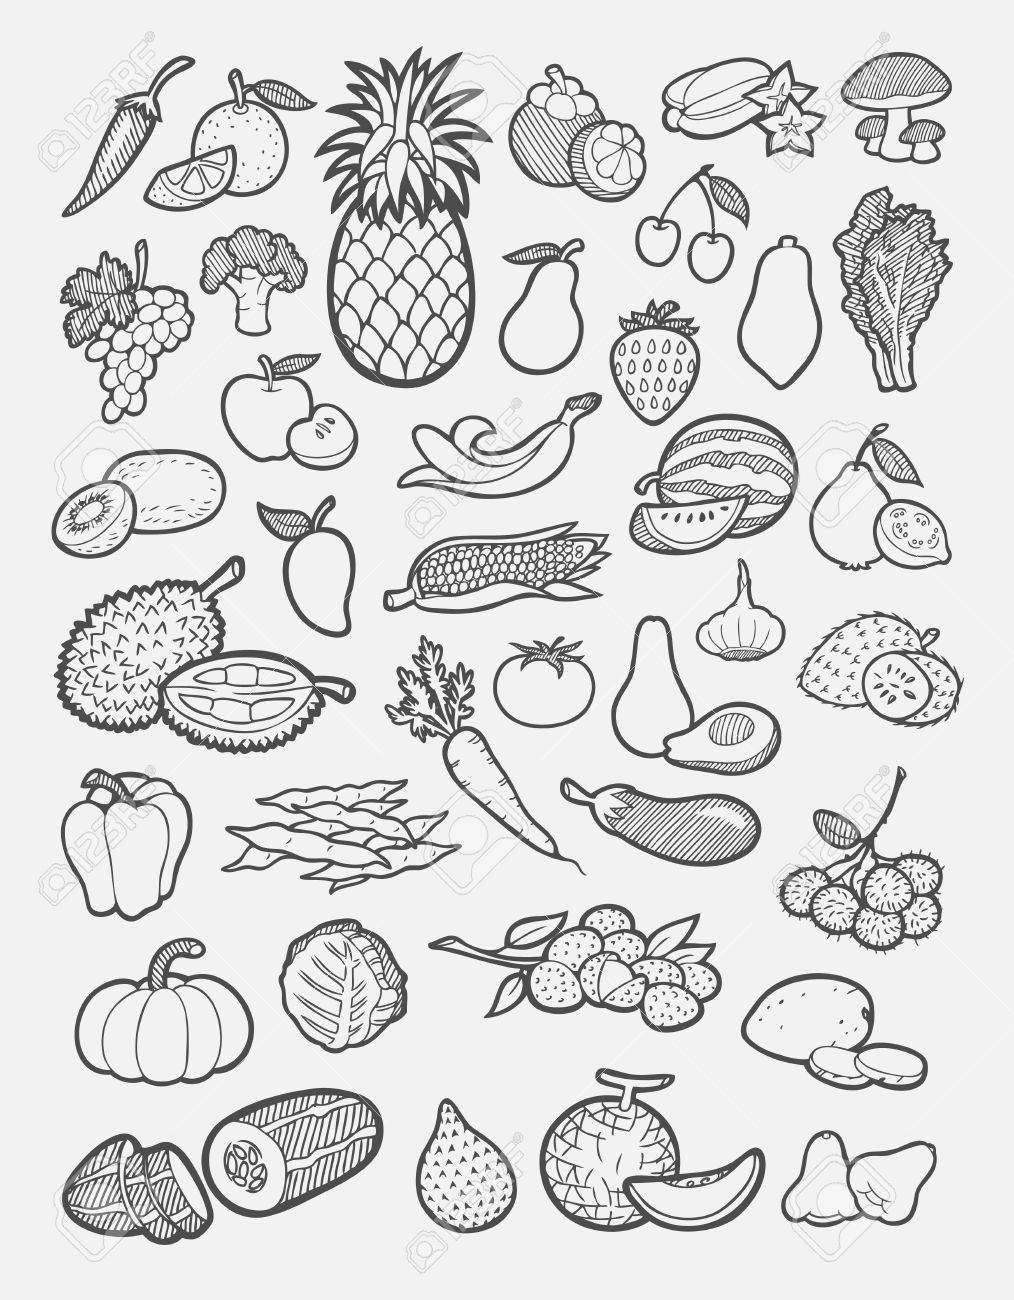 Set Of Fruit And Vegetable Icons Sketch Easy To Use Royalty Free